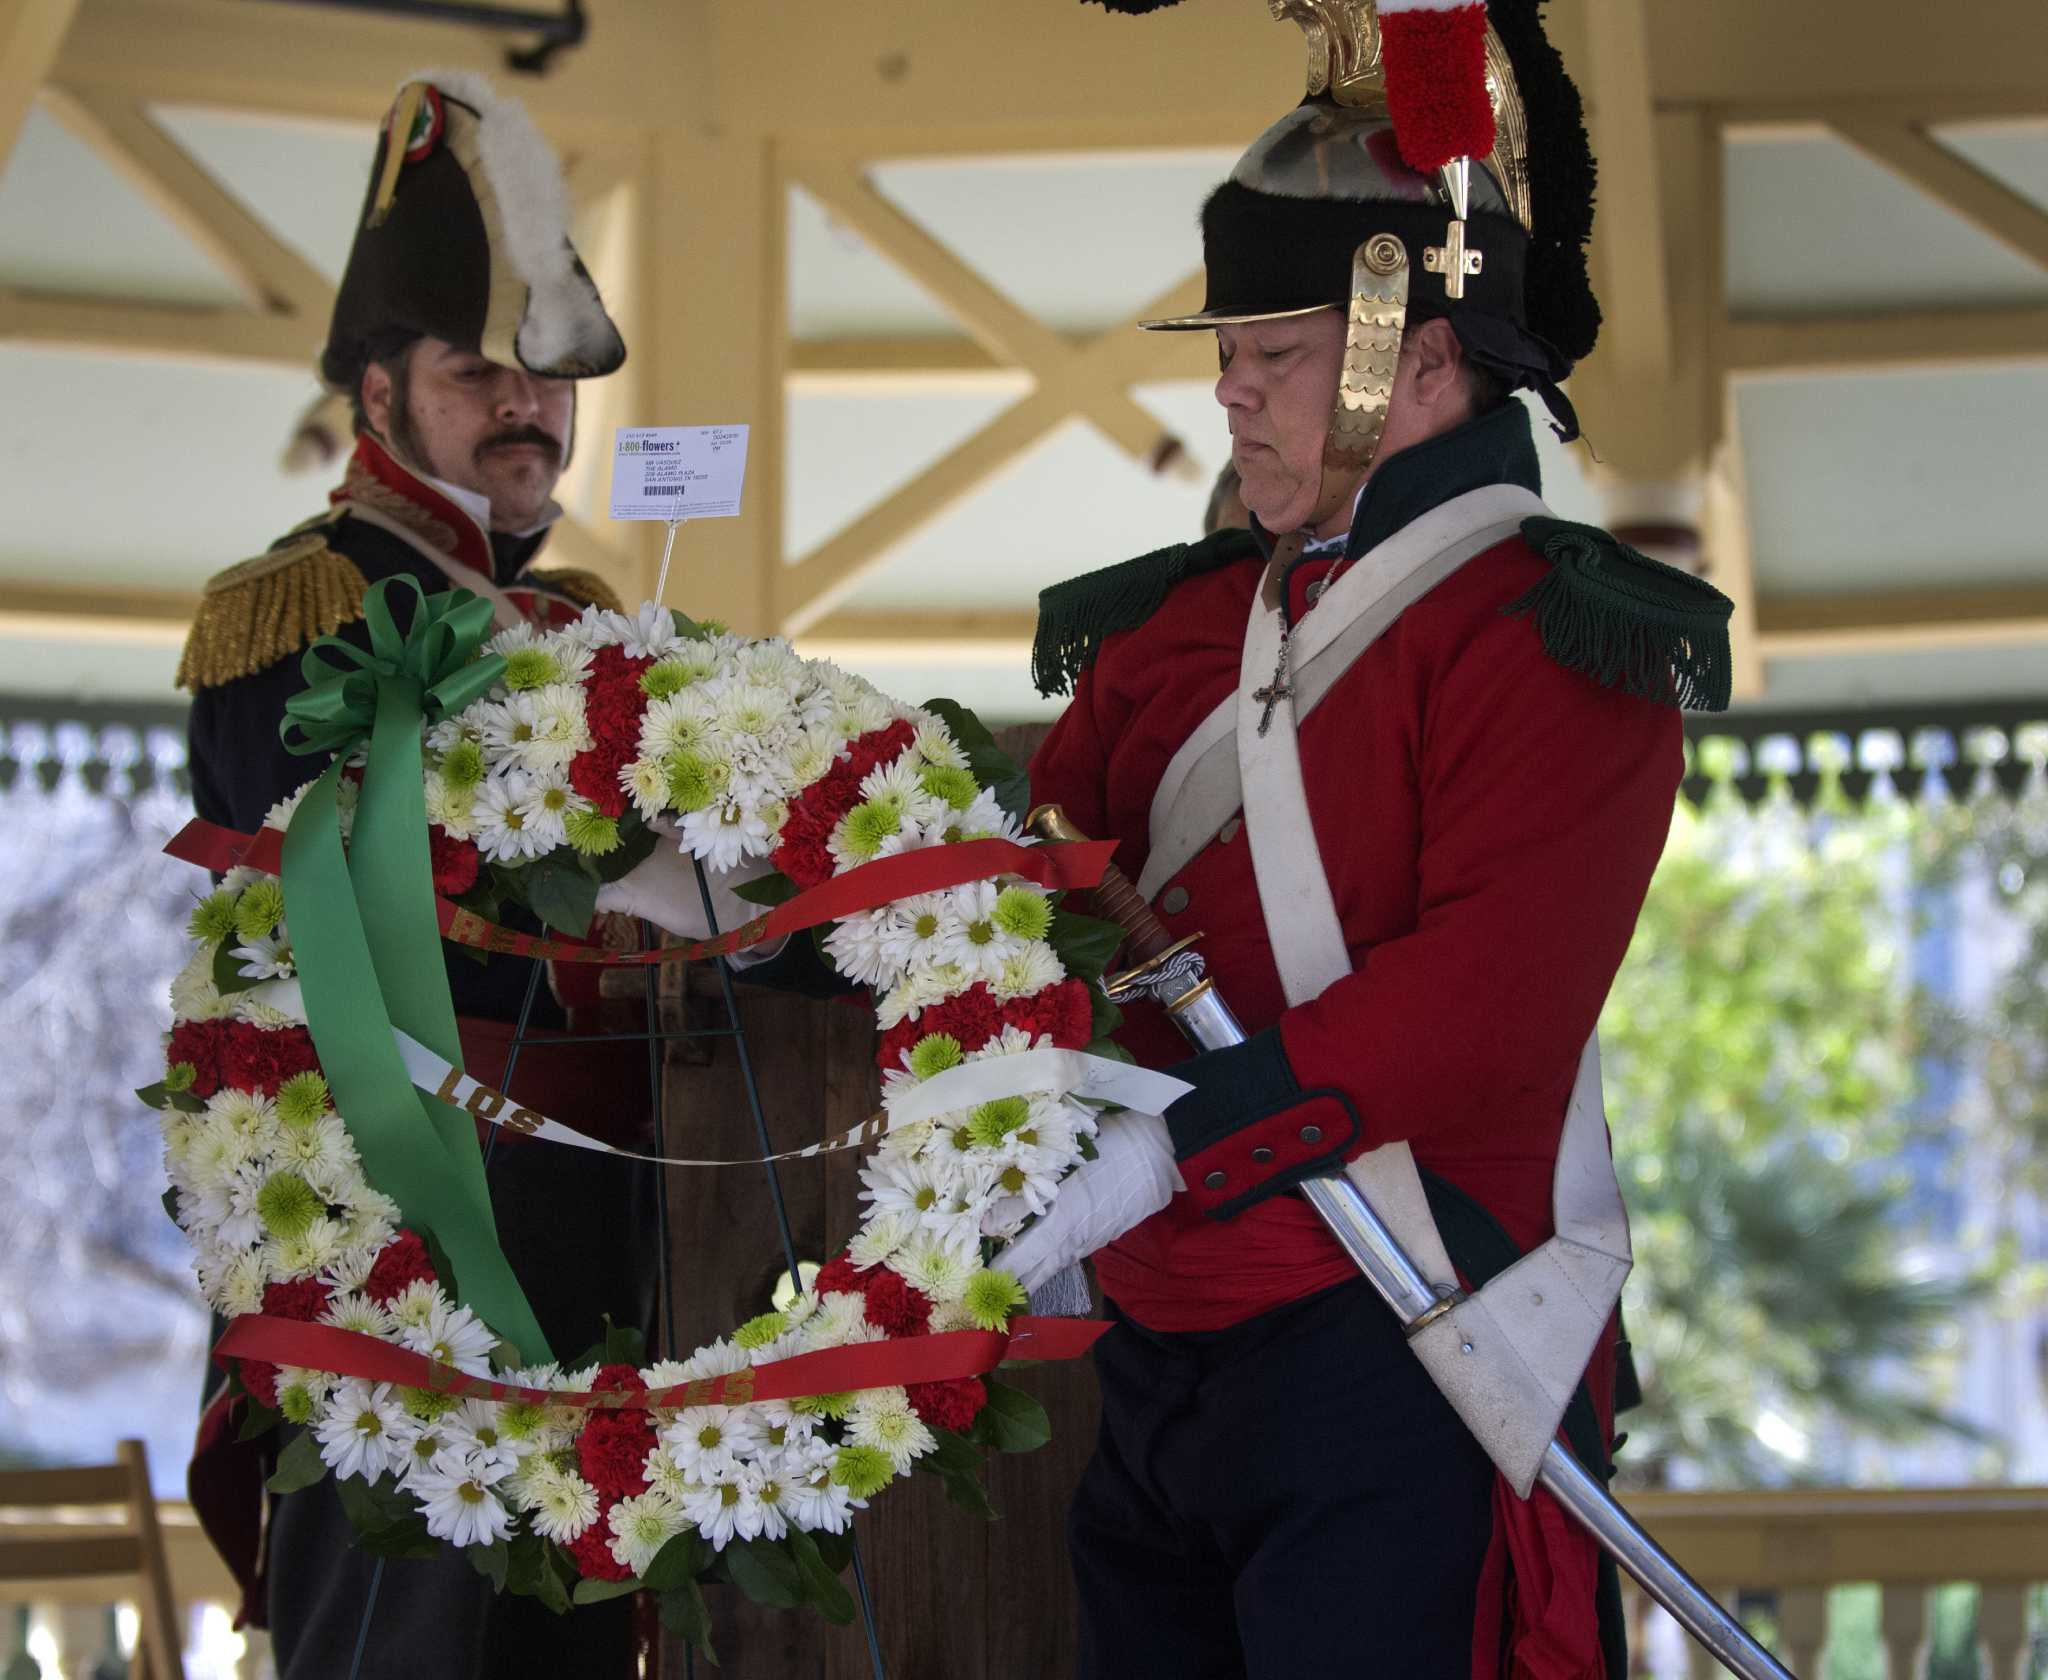 Living history group honors fallen Mexican soldiers of the Alamo - San Antonio Express-News & Living history group honors fallen Mexican soldiers of the Alamo ...